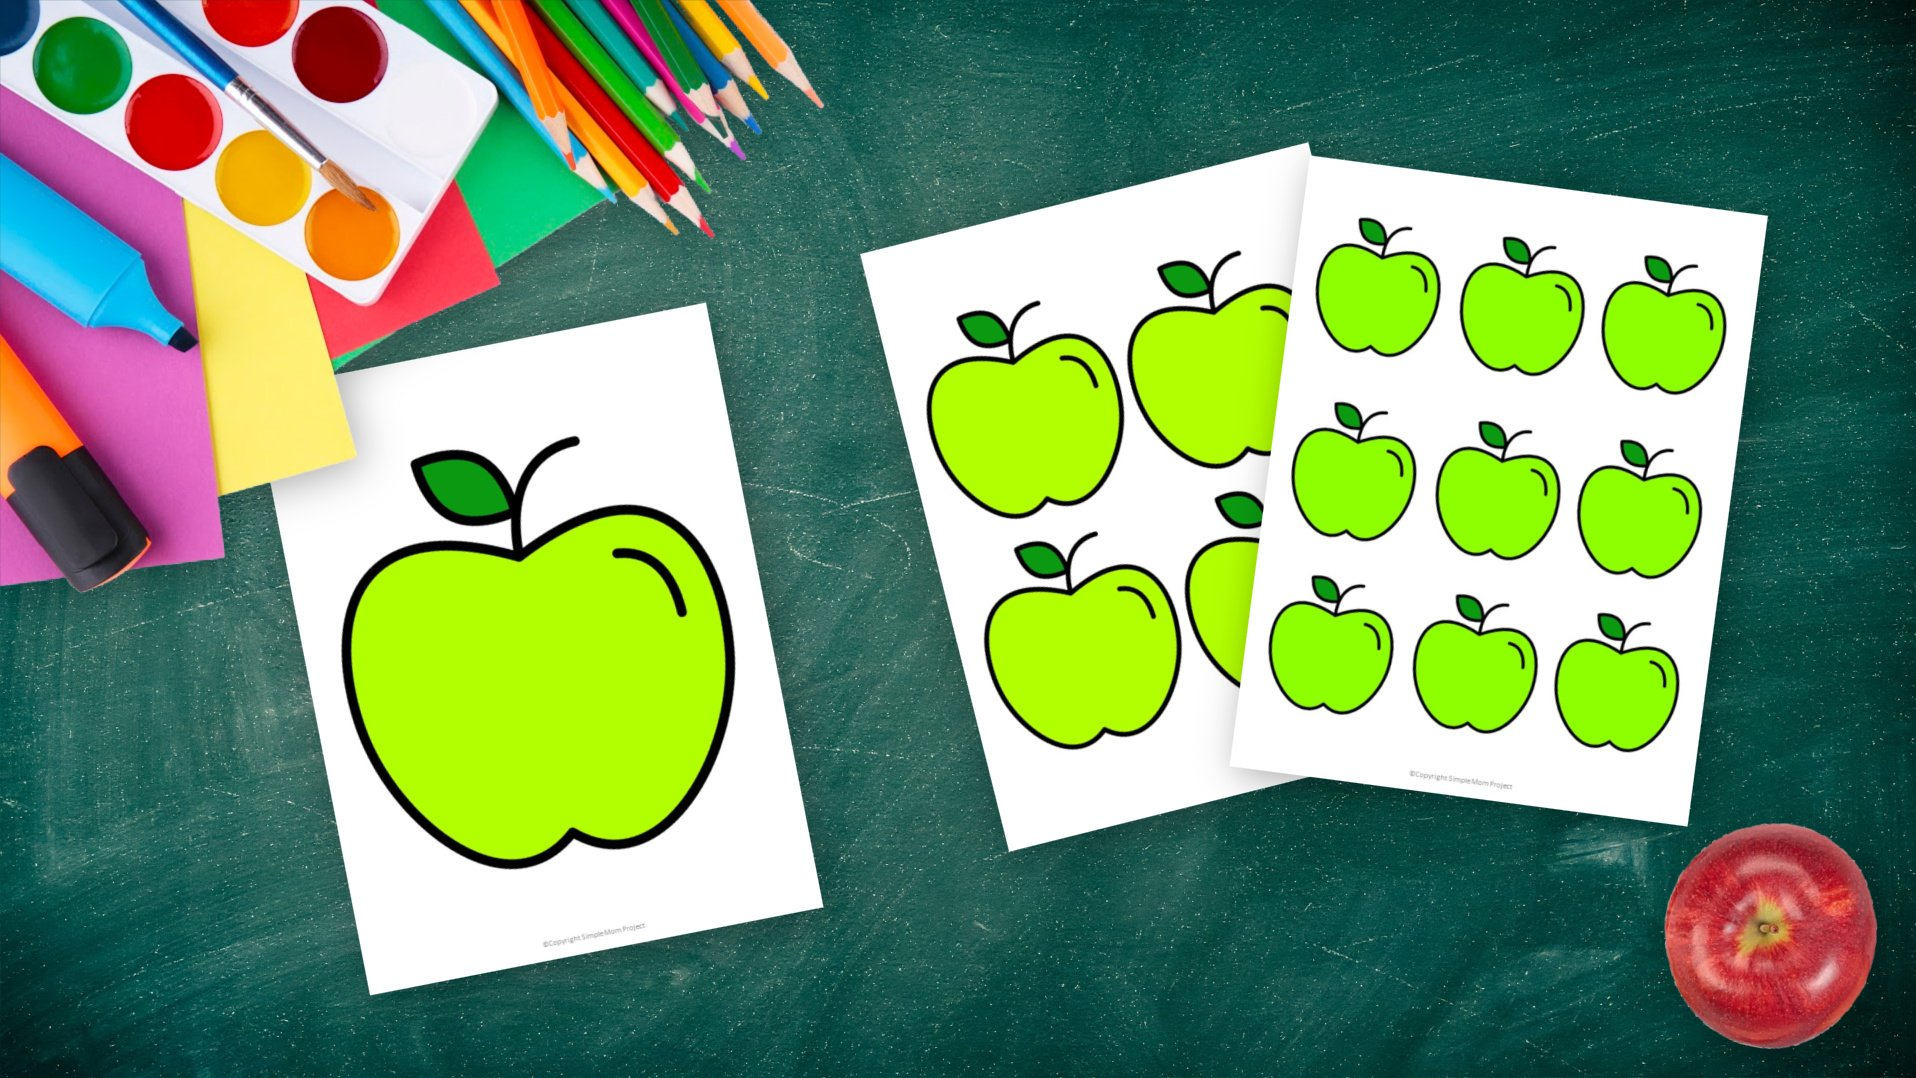 Free Printable Large Small Medium Red Apple Template for Fall Crafts, Autumn Apple Crafts, Teacher Appreciation Crafts 3